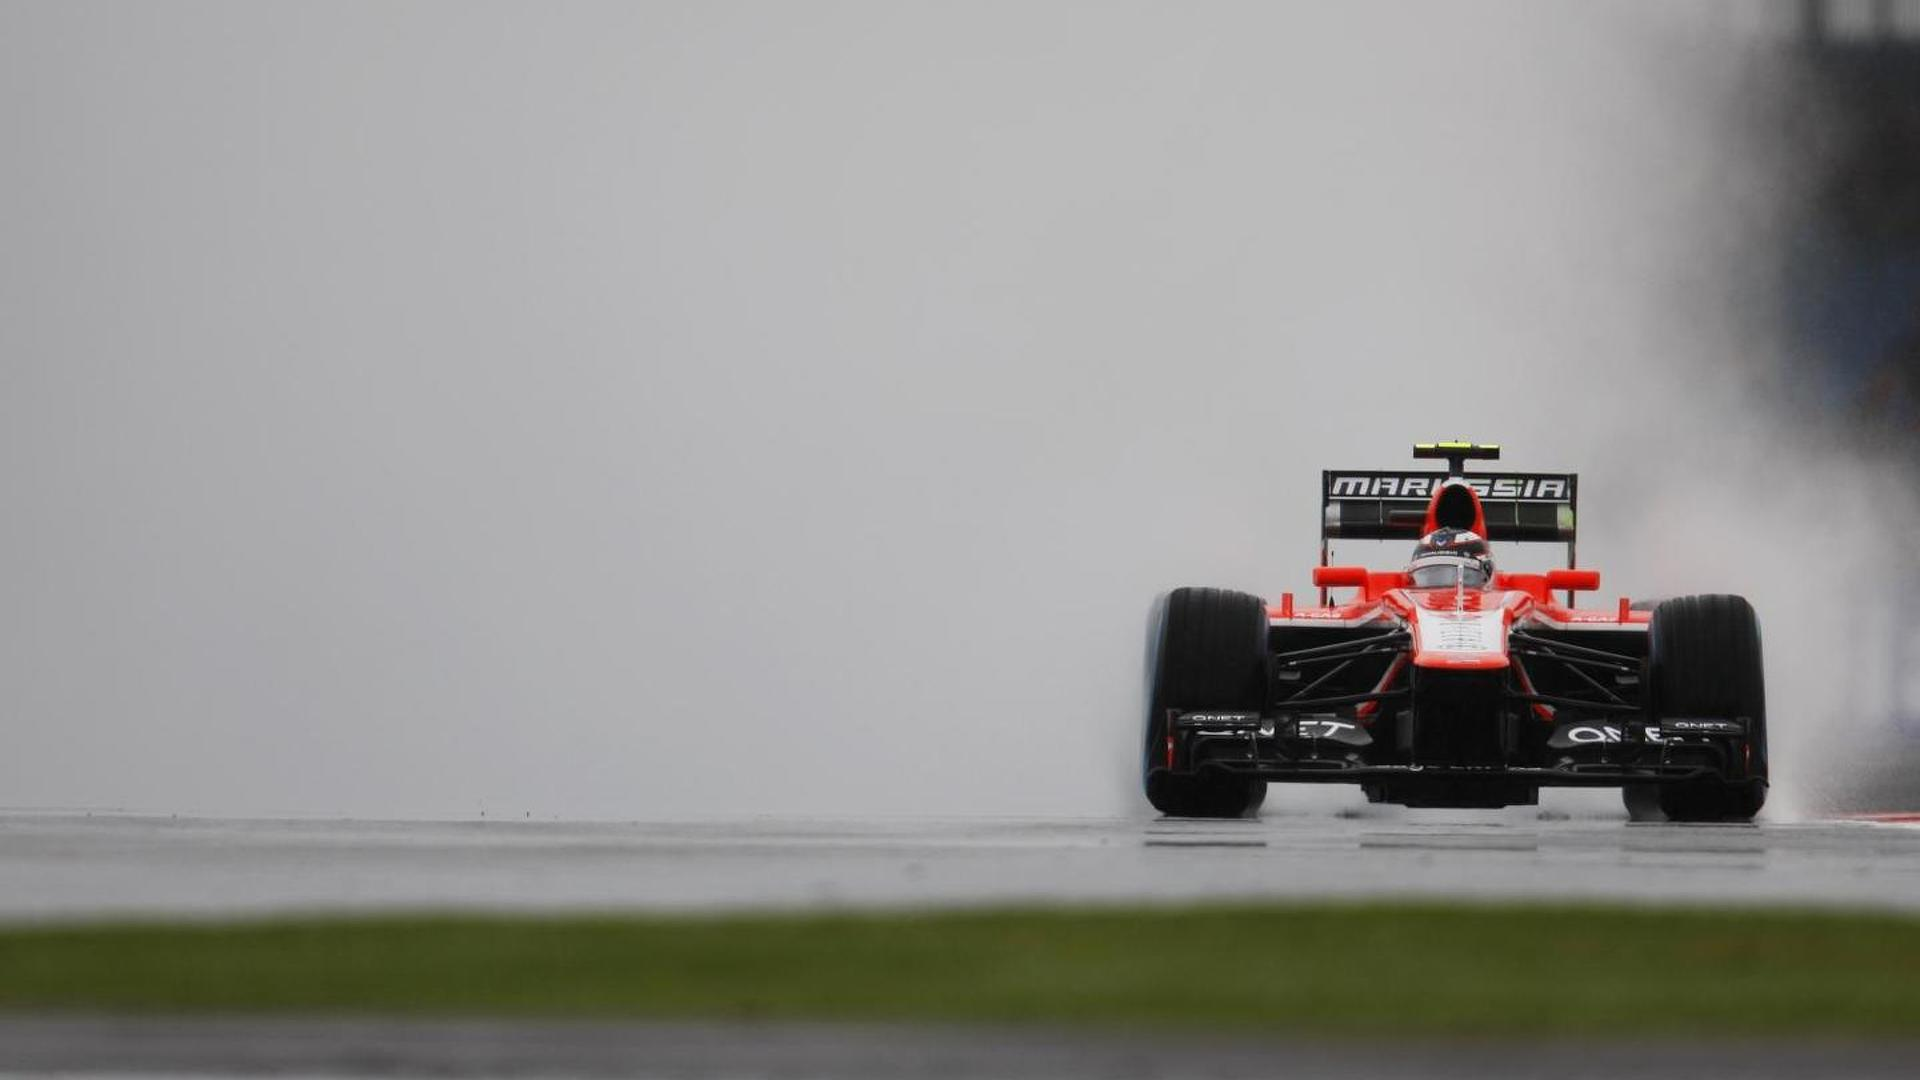 F1 needs rule to stop 'disastrous' wet Fridays - Ecclestone